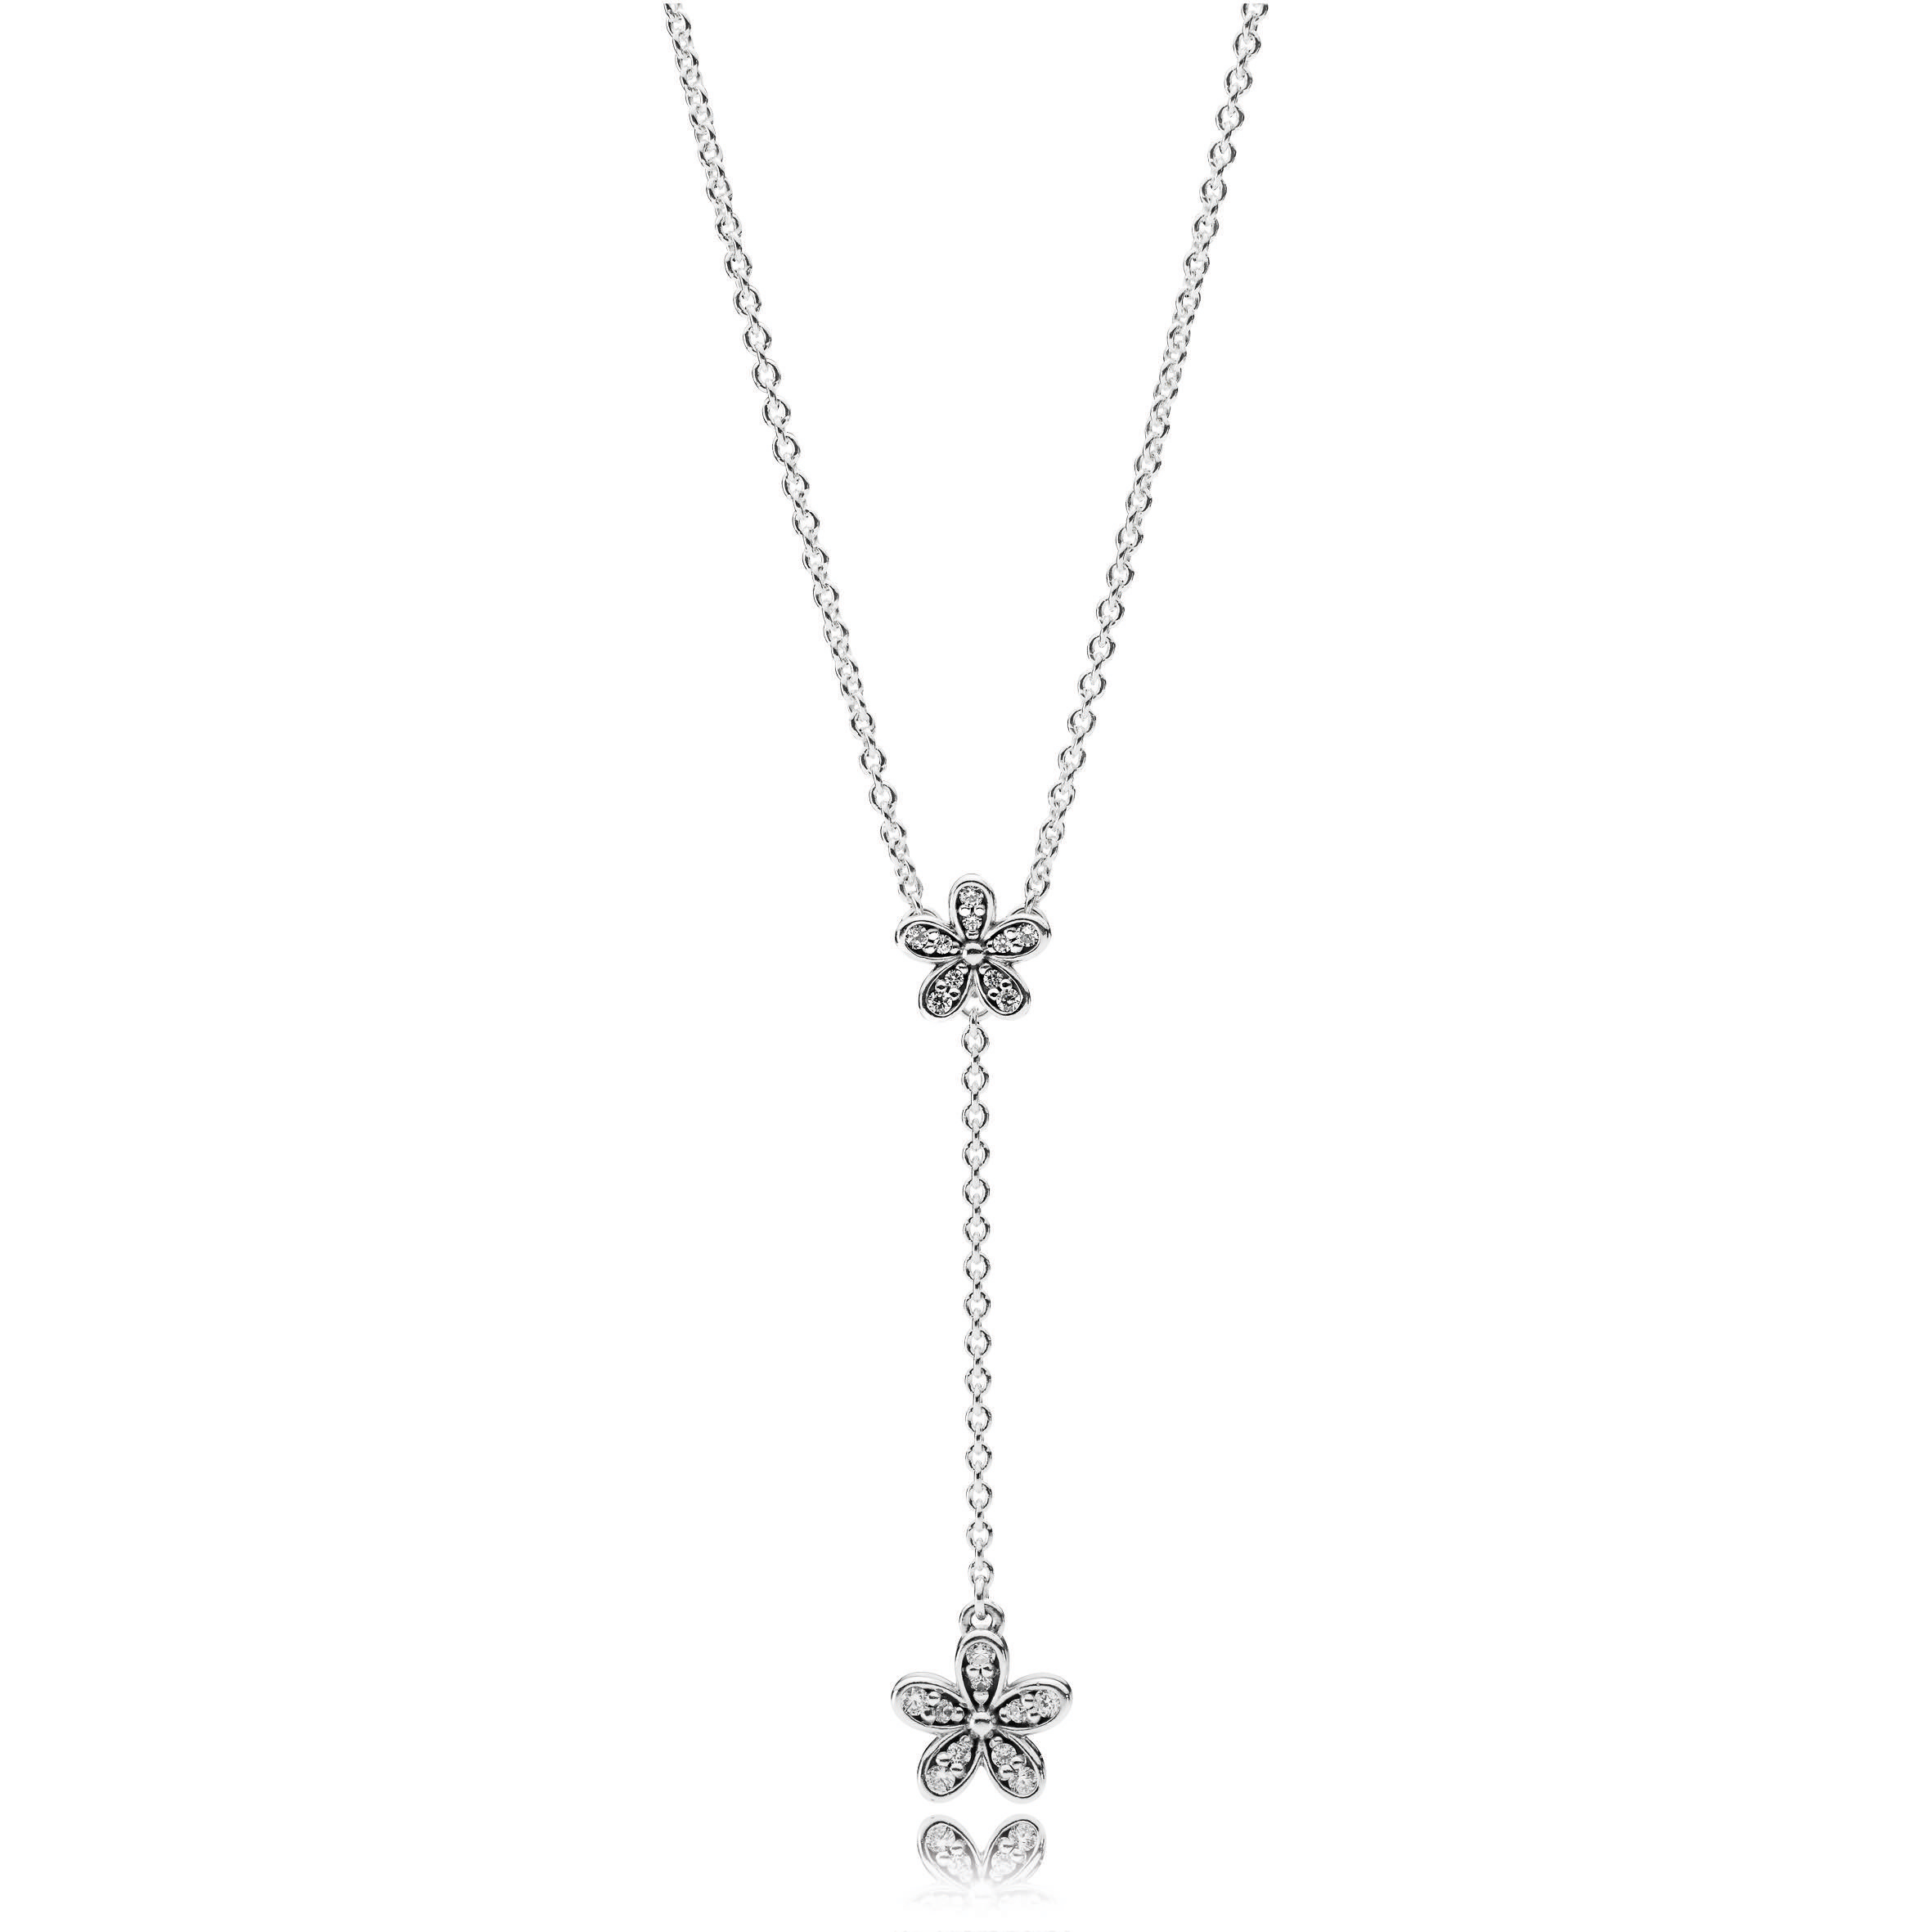 joma necklace jewellery necklaces delightful daisy